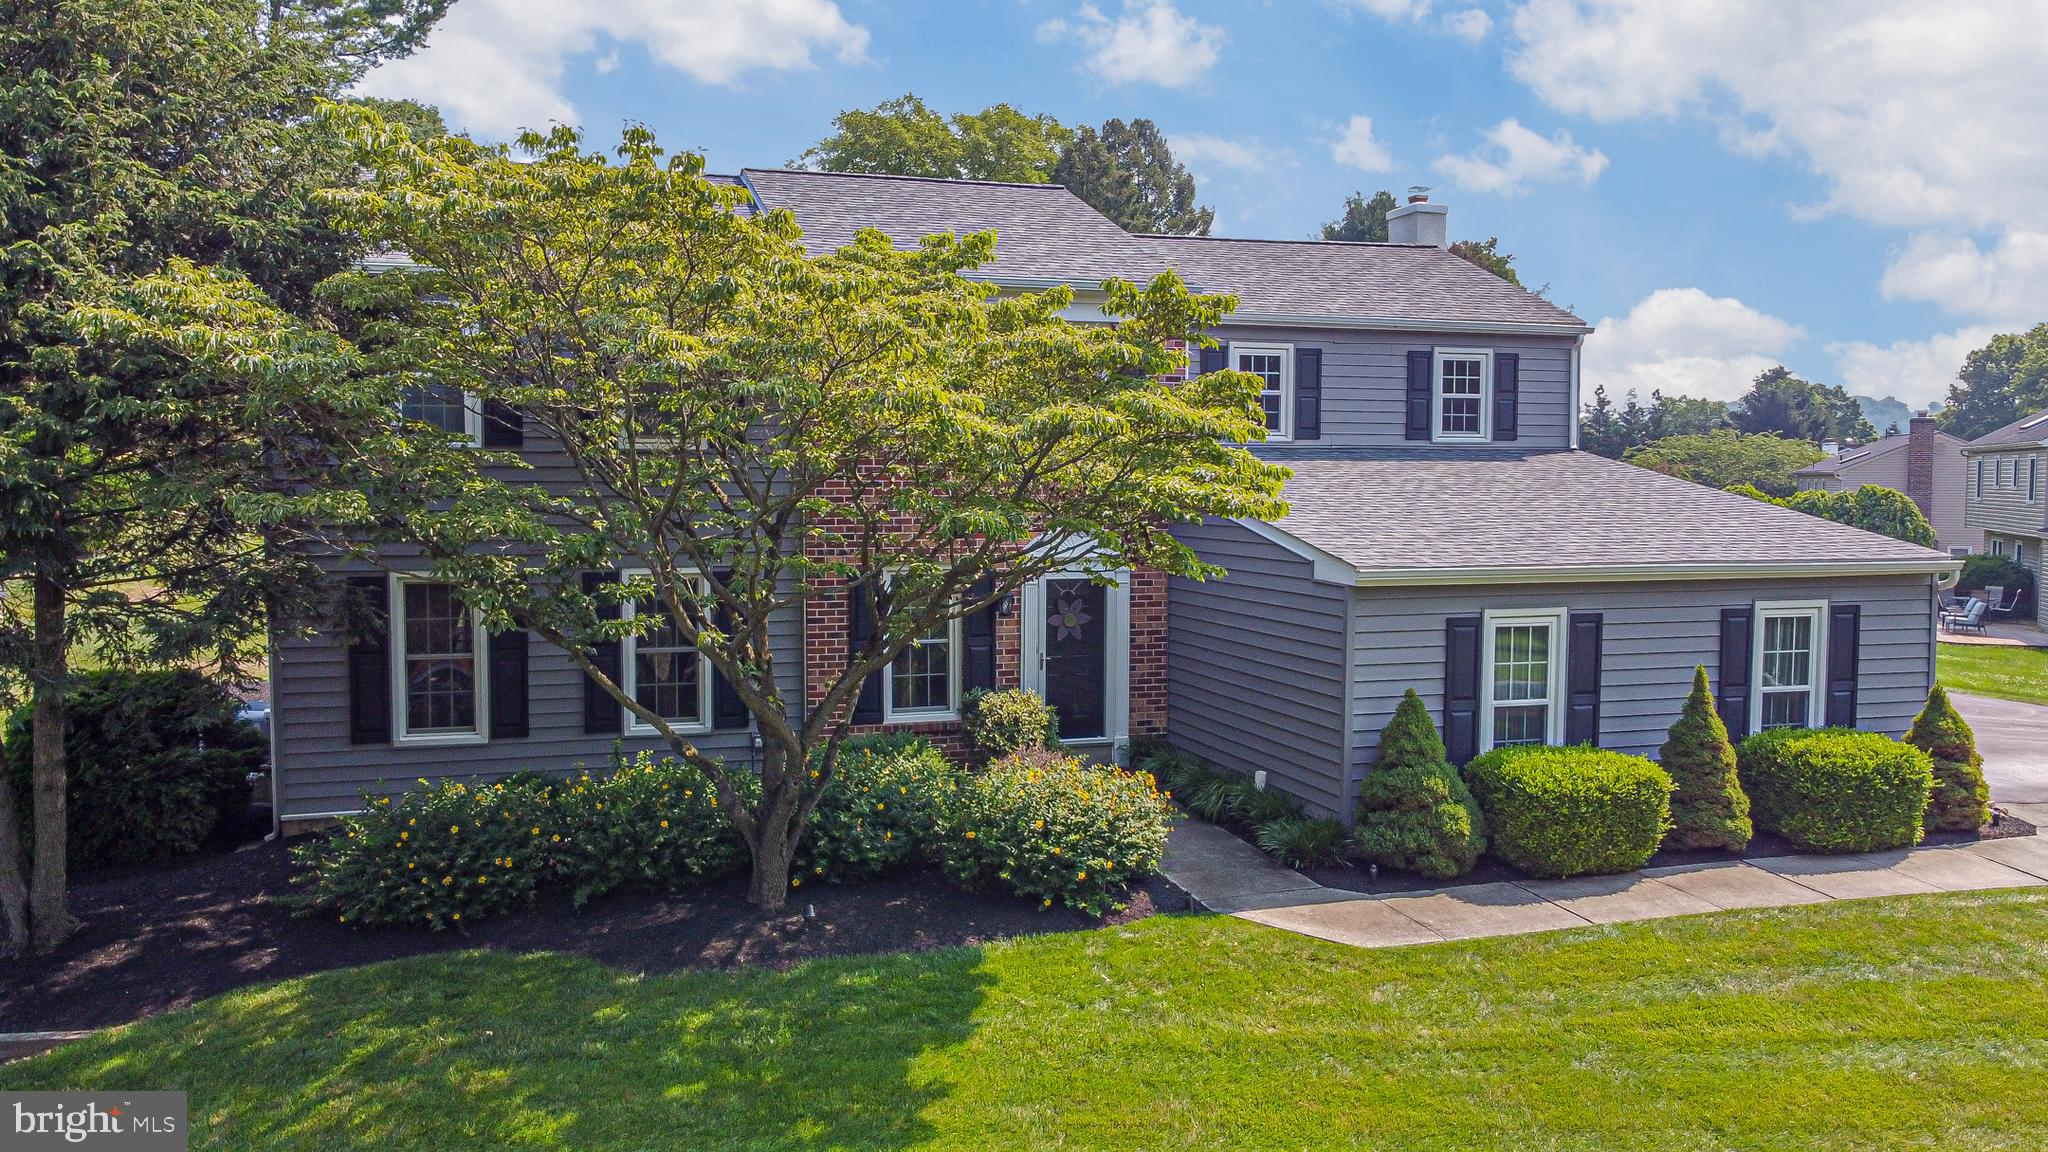 The wait for the perfect home at the right price to hit the market is over! Welcome to 221 Shropshire Drive in desirable East Bradford Township. At last, a home in an established neighborhood is available that requires no work. Everything has been updated so this property is ready for its new owner.  The home sits high on the private lot and has great curb appeal.  Walking up on the recently repaved and sealed driveway you will immediately notice the numerous exterior improvements and upgrades.  The roof, gutters, siding, shutters, windows, skylights and doors have been upgraded and replaced.  Another exterior upgrade is the extensive landscaping upgrades.  Green giants were planted at the rear providing more and more additional privacy over time.  It gets better because a tour inside is a real treat.  It has all the must have's and with supersized rooms, it's larger than it appears.  The main level has gorgeous hardwoods and custom millwork.  The level is highlighted by the kitchen and family room.  These are the rooms you will want to spend your time.  The kitchen with breakfast area has granite counters, gas cooking and stainless appliances.  It opens to the huge family room with wood burning fireplace, recessed lights and sliders to the porch.  The upper level is highlighted by newer carpets, upgraded fixtures, a large primary bedroom suite and FOUR additional bedrooms.  Need more space?  The finished basement provides over 600 square feet of additional living space and has a separate storage area.  All this in a super convenient location only minutes to all the Borough has to offer. There is unbelievable value here so schedule a tour and come see for yourself.  Act quickly because this opportunity won't last long!